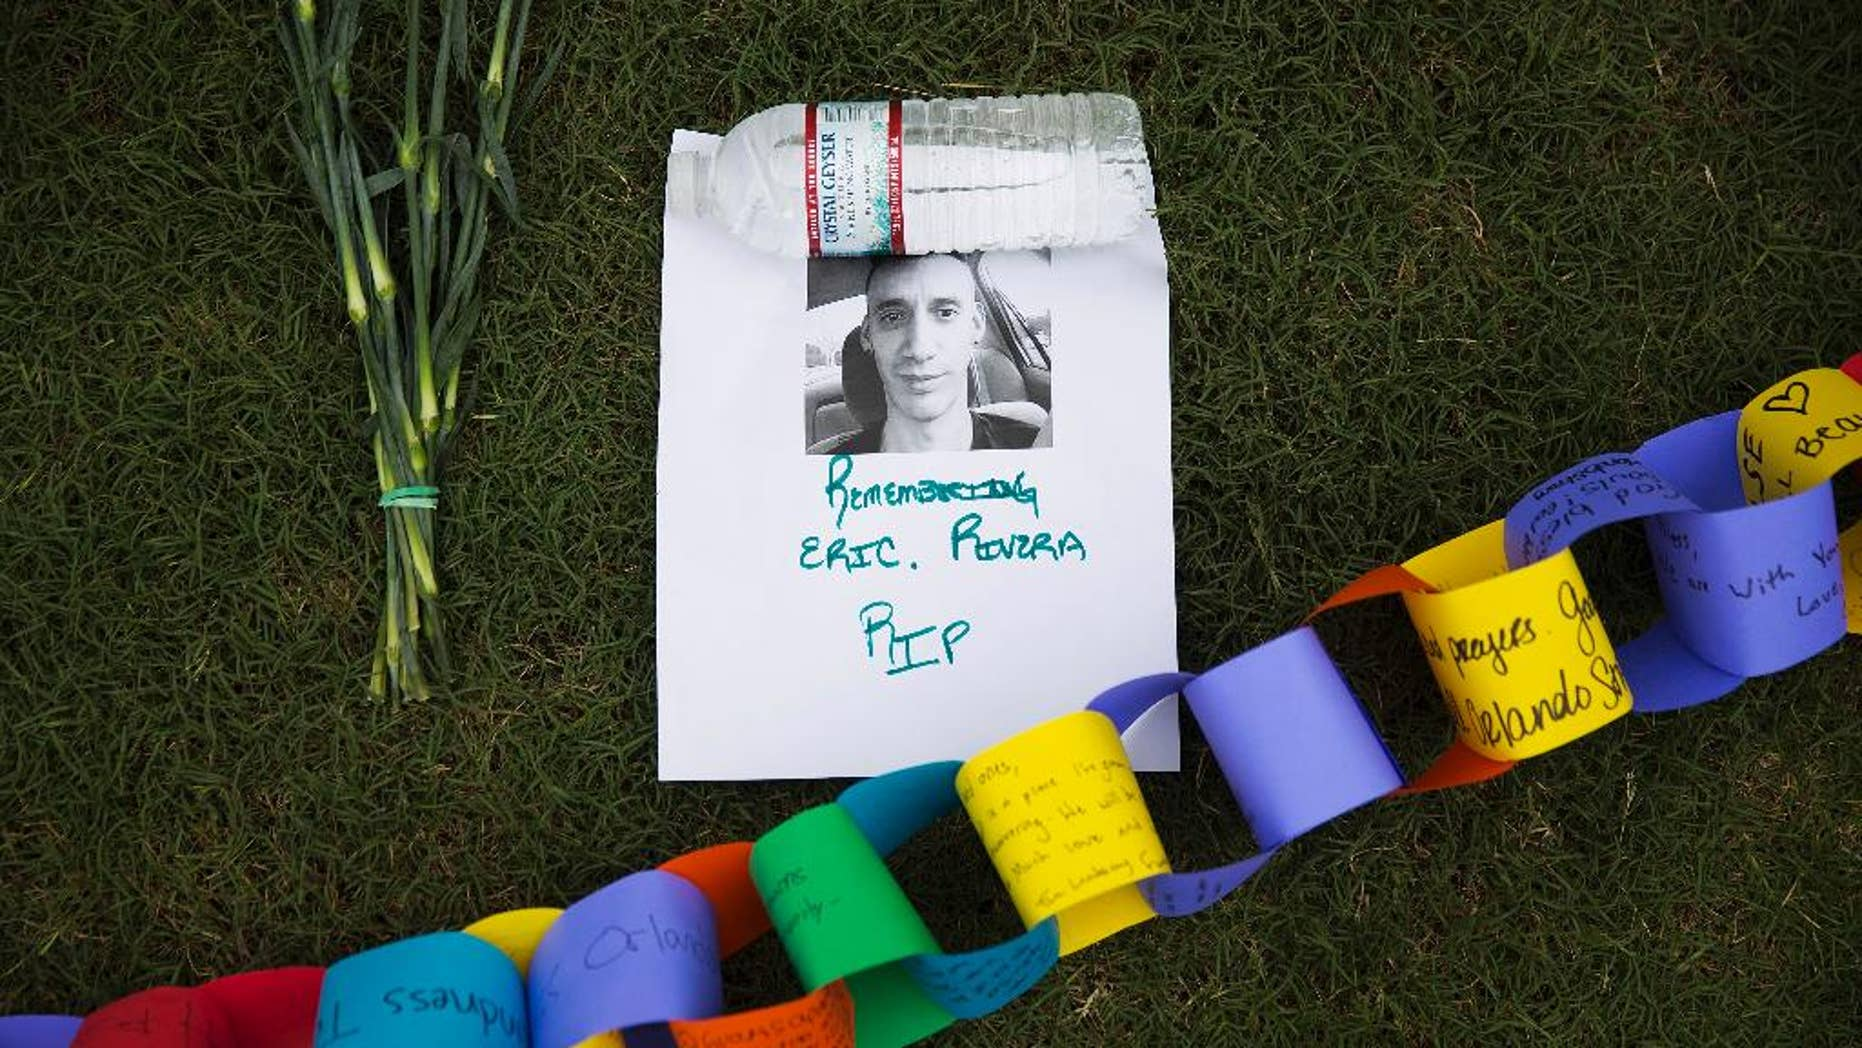 A remembrance to Eric Rivera who was killed in the mass shooting at the Pulse nightclub sits amongst a makeshift memorial to the all the victims Monday, June 13, 2016, in Orlando, Fla. A gunman killed dozens of people in a massacre at a crowded gay nightclub in Orlando on Sunday, making it the deadliest mass shooting in modern U.S. history.  (AP Photo/David Goldman)